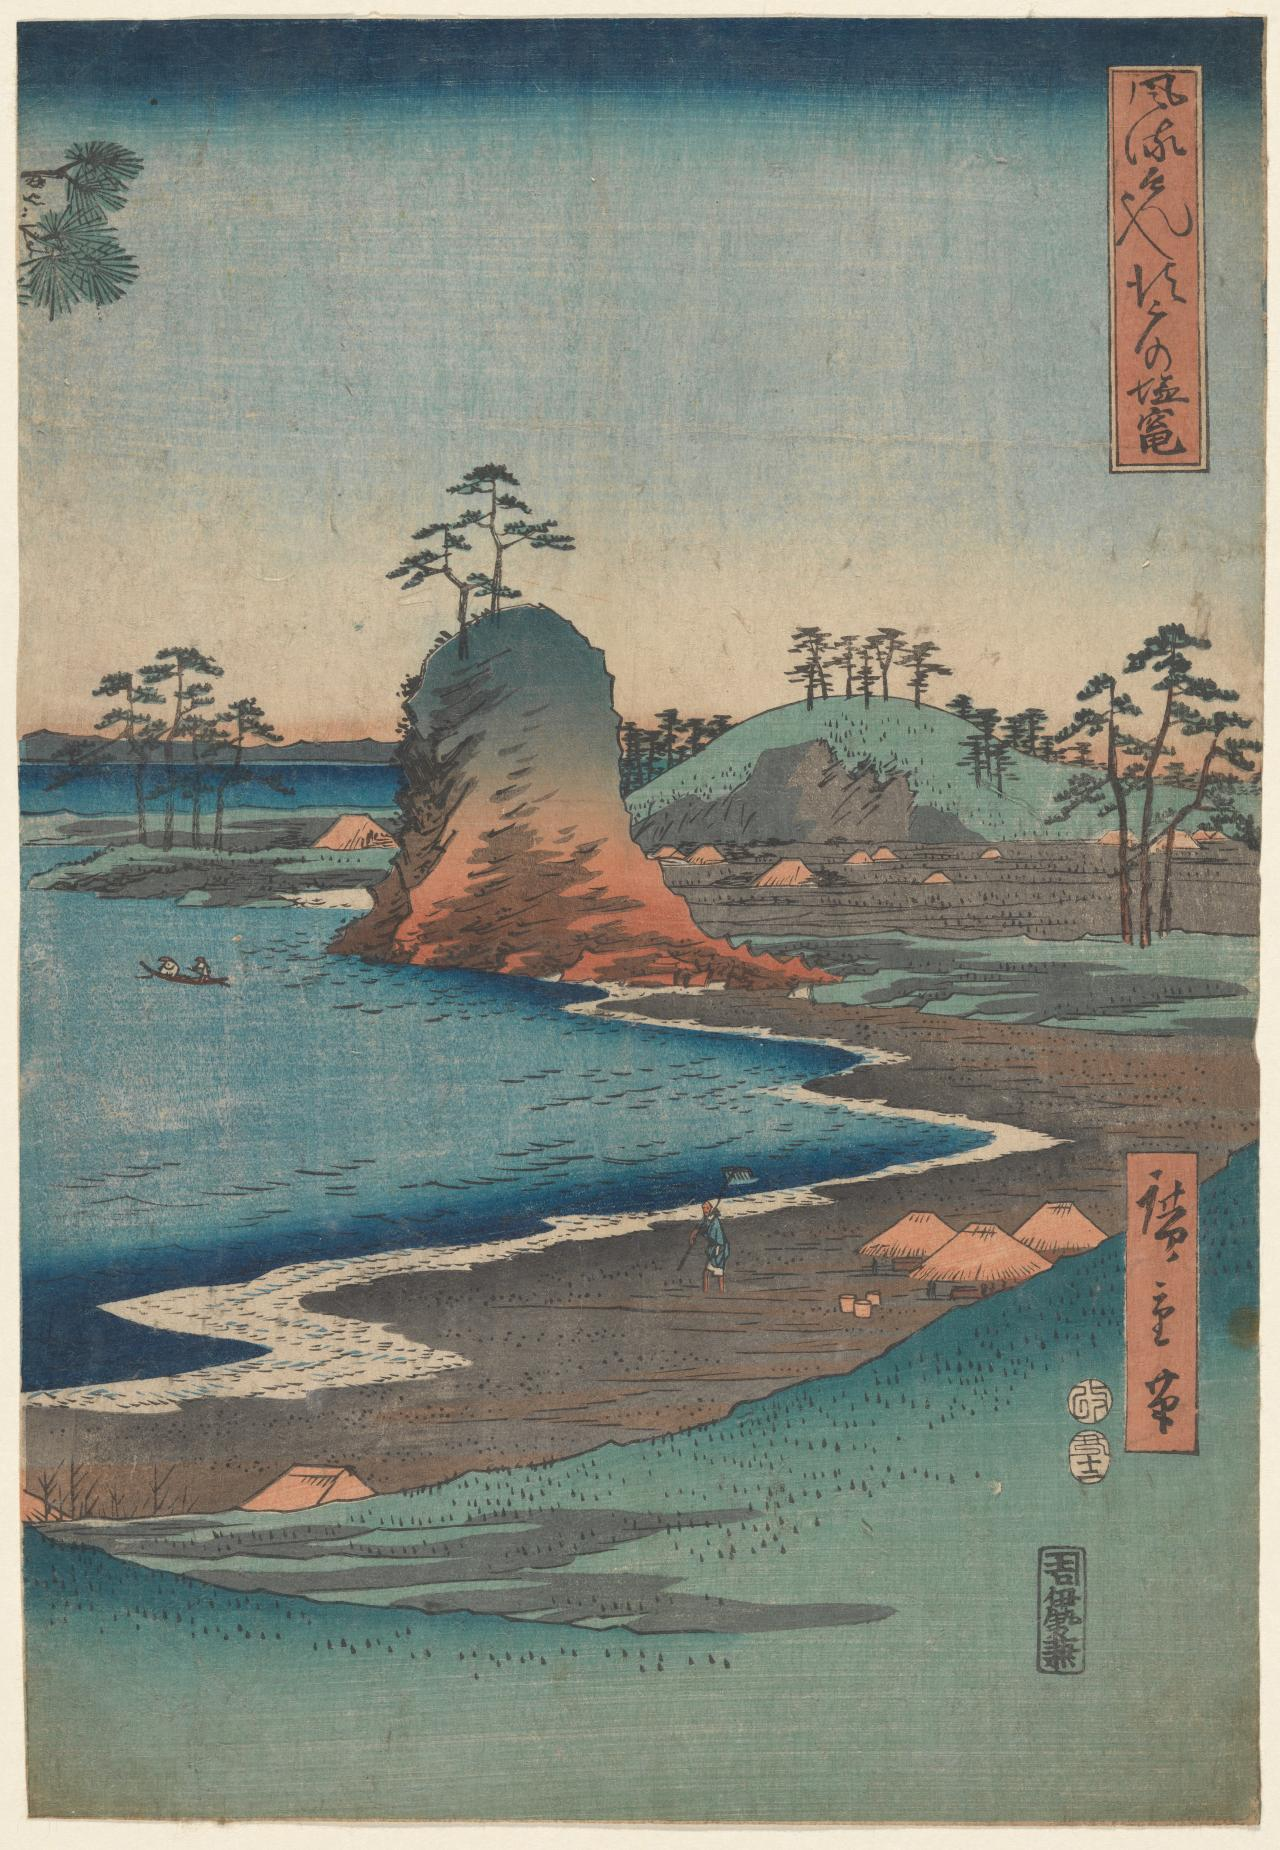 Poetic landscape with Genji by the salt fields of Suma